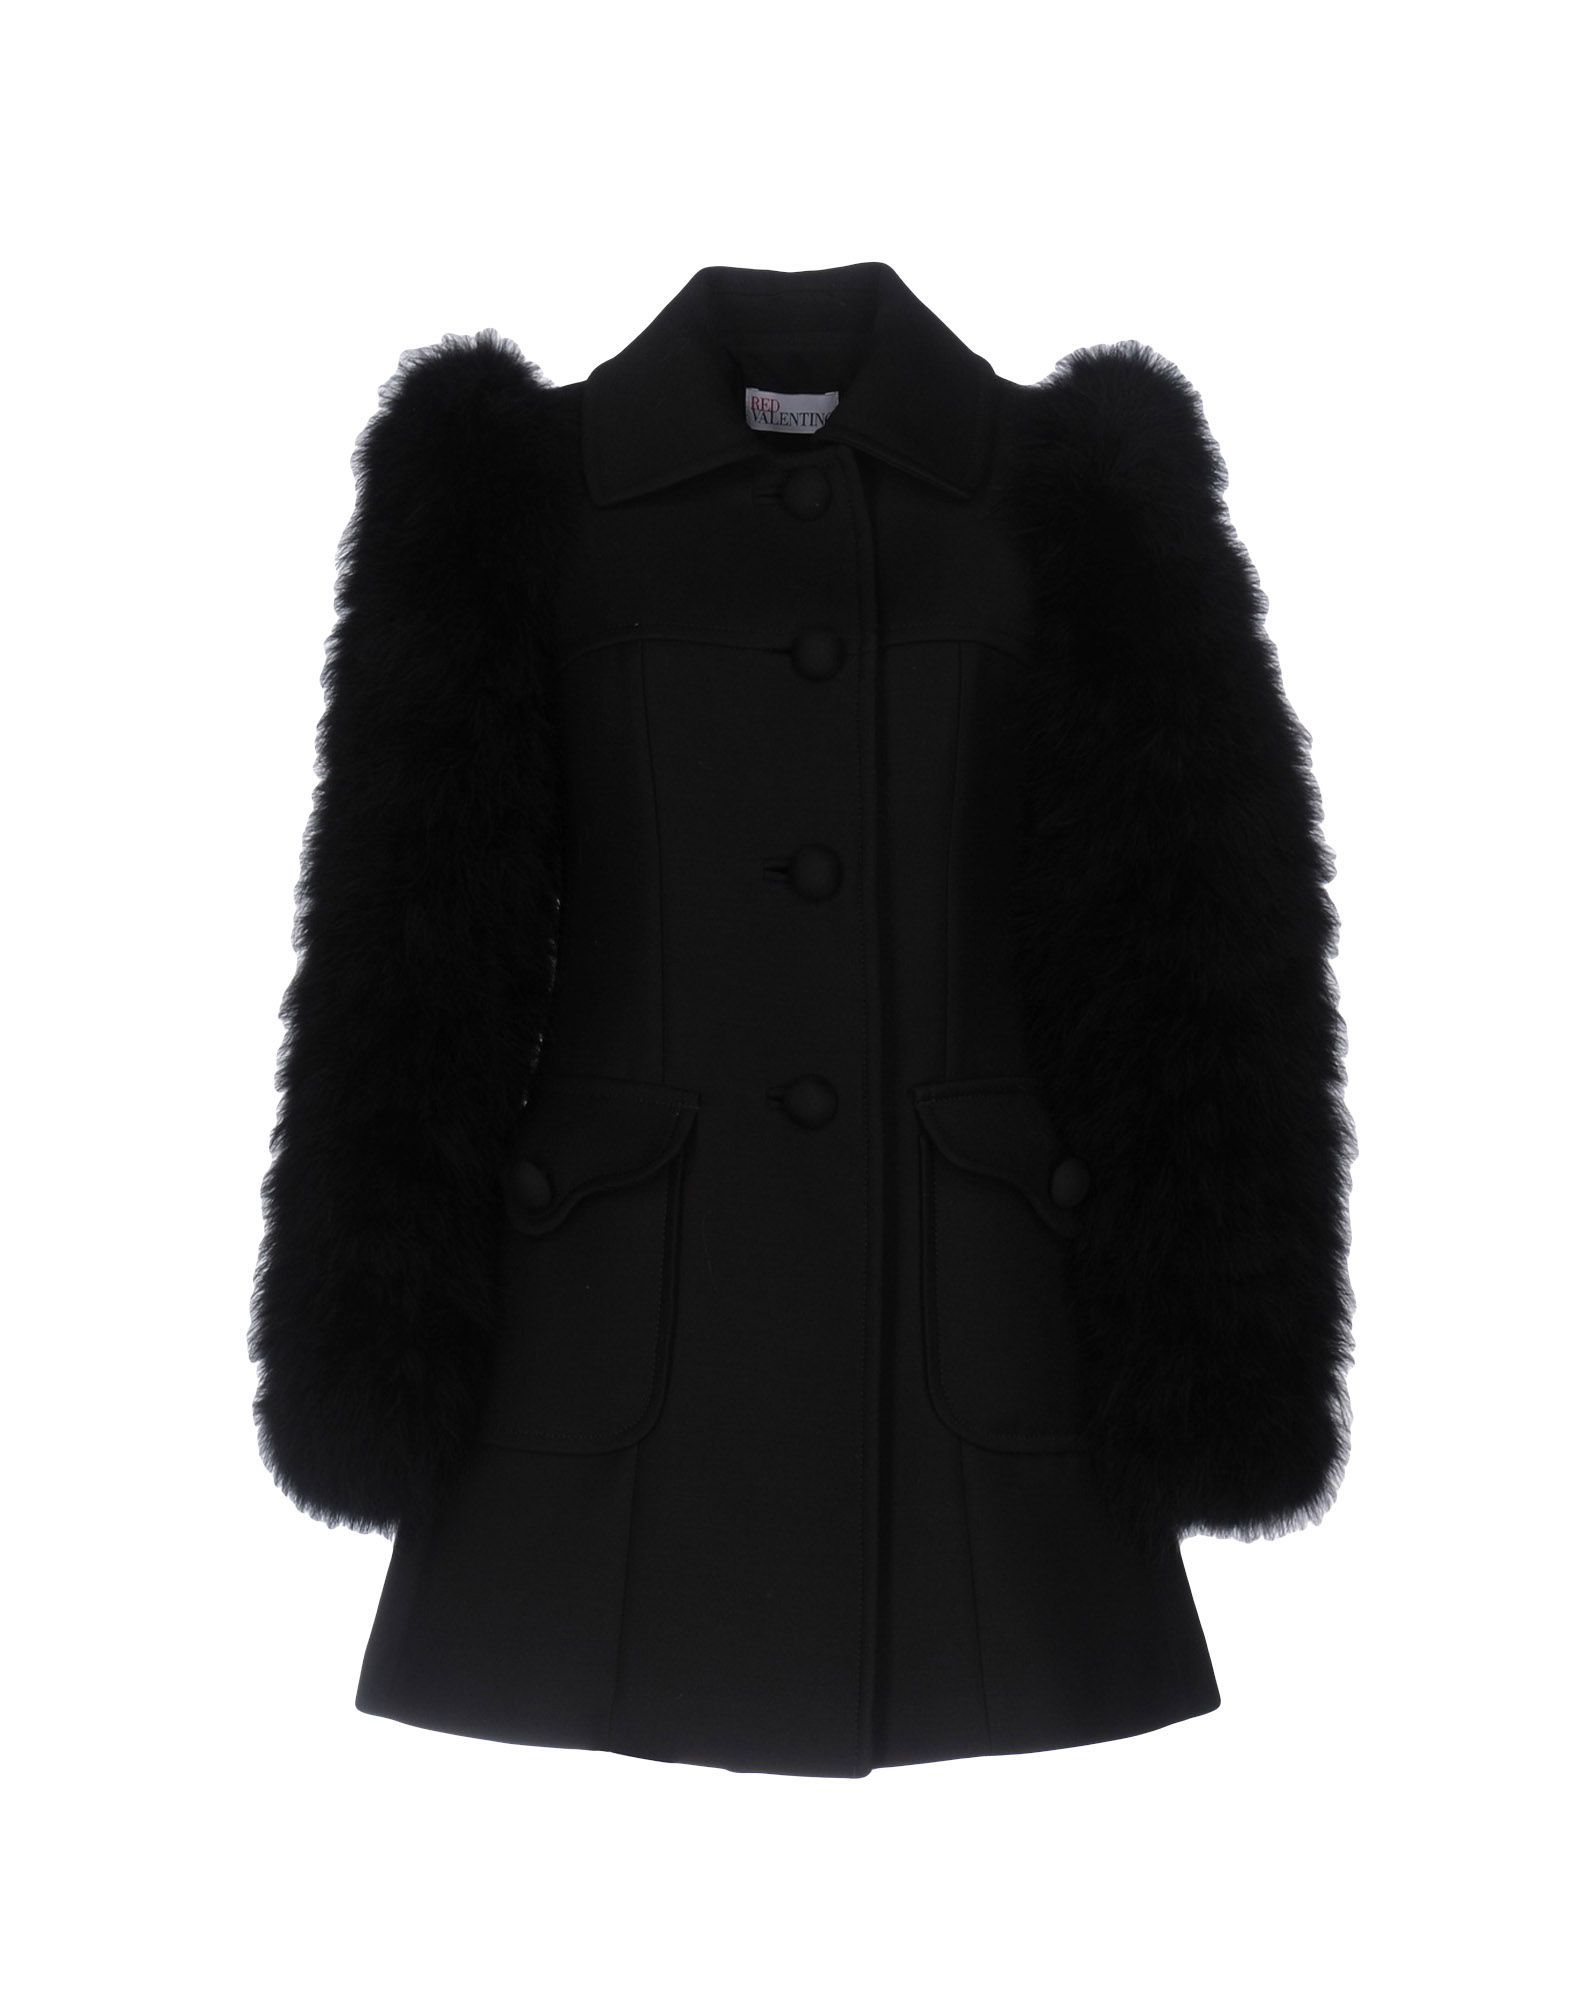 COATS & JACKETS Redvalentino Black Woman Virgin Wool